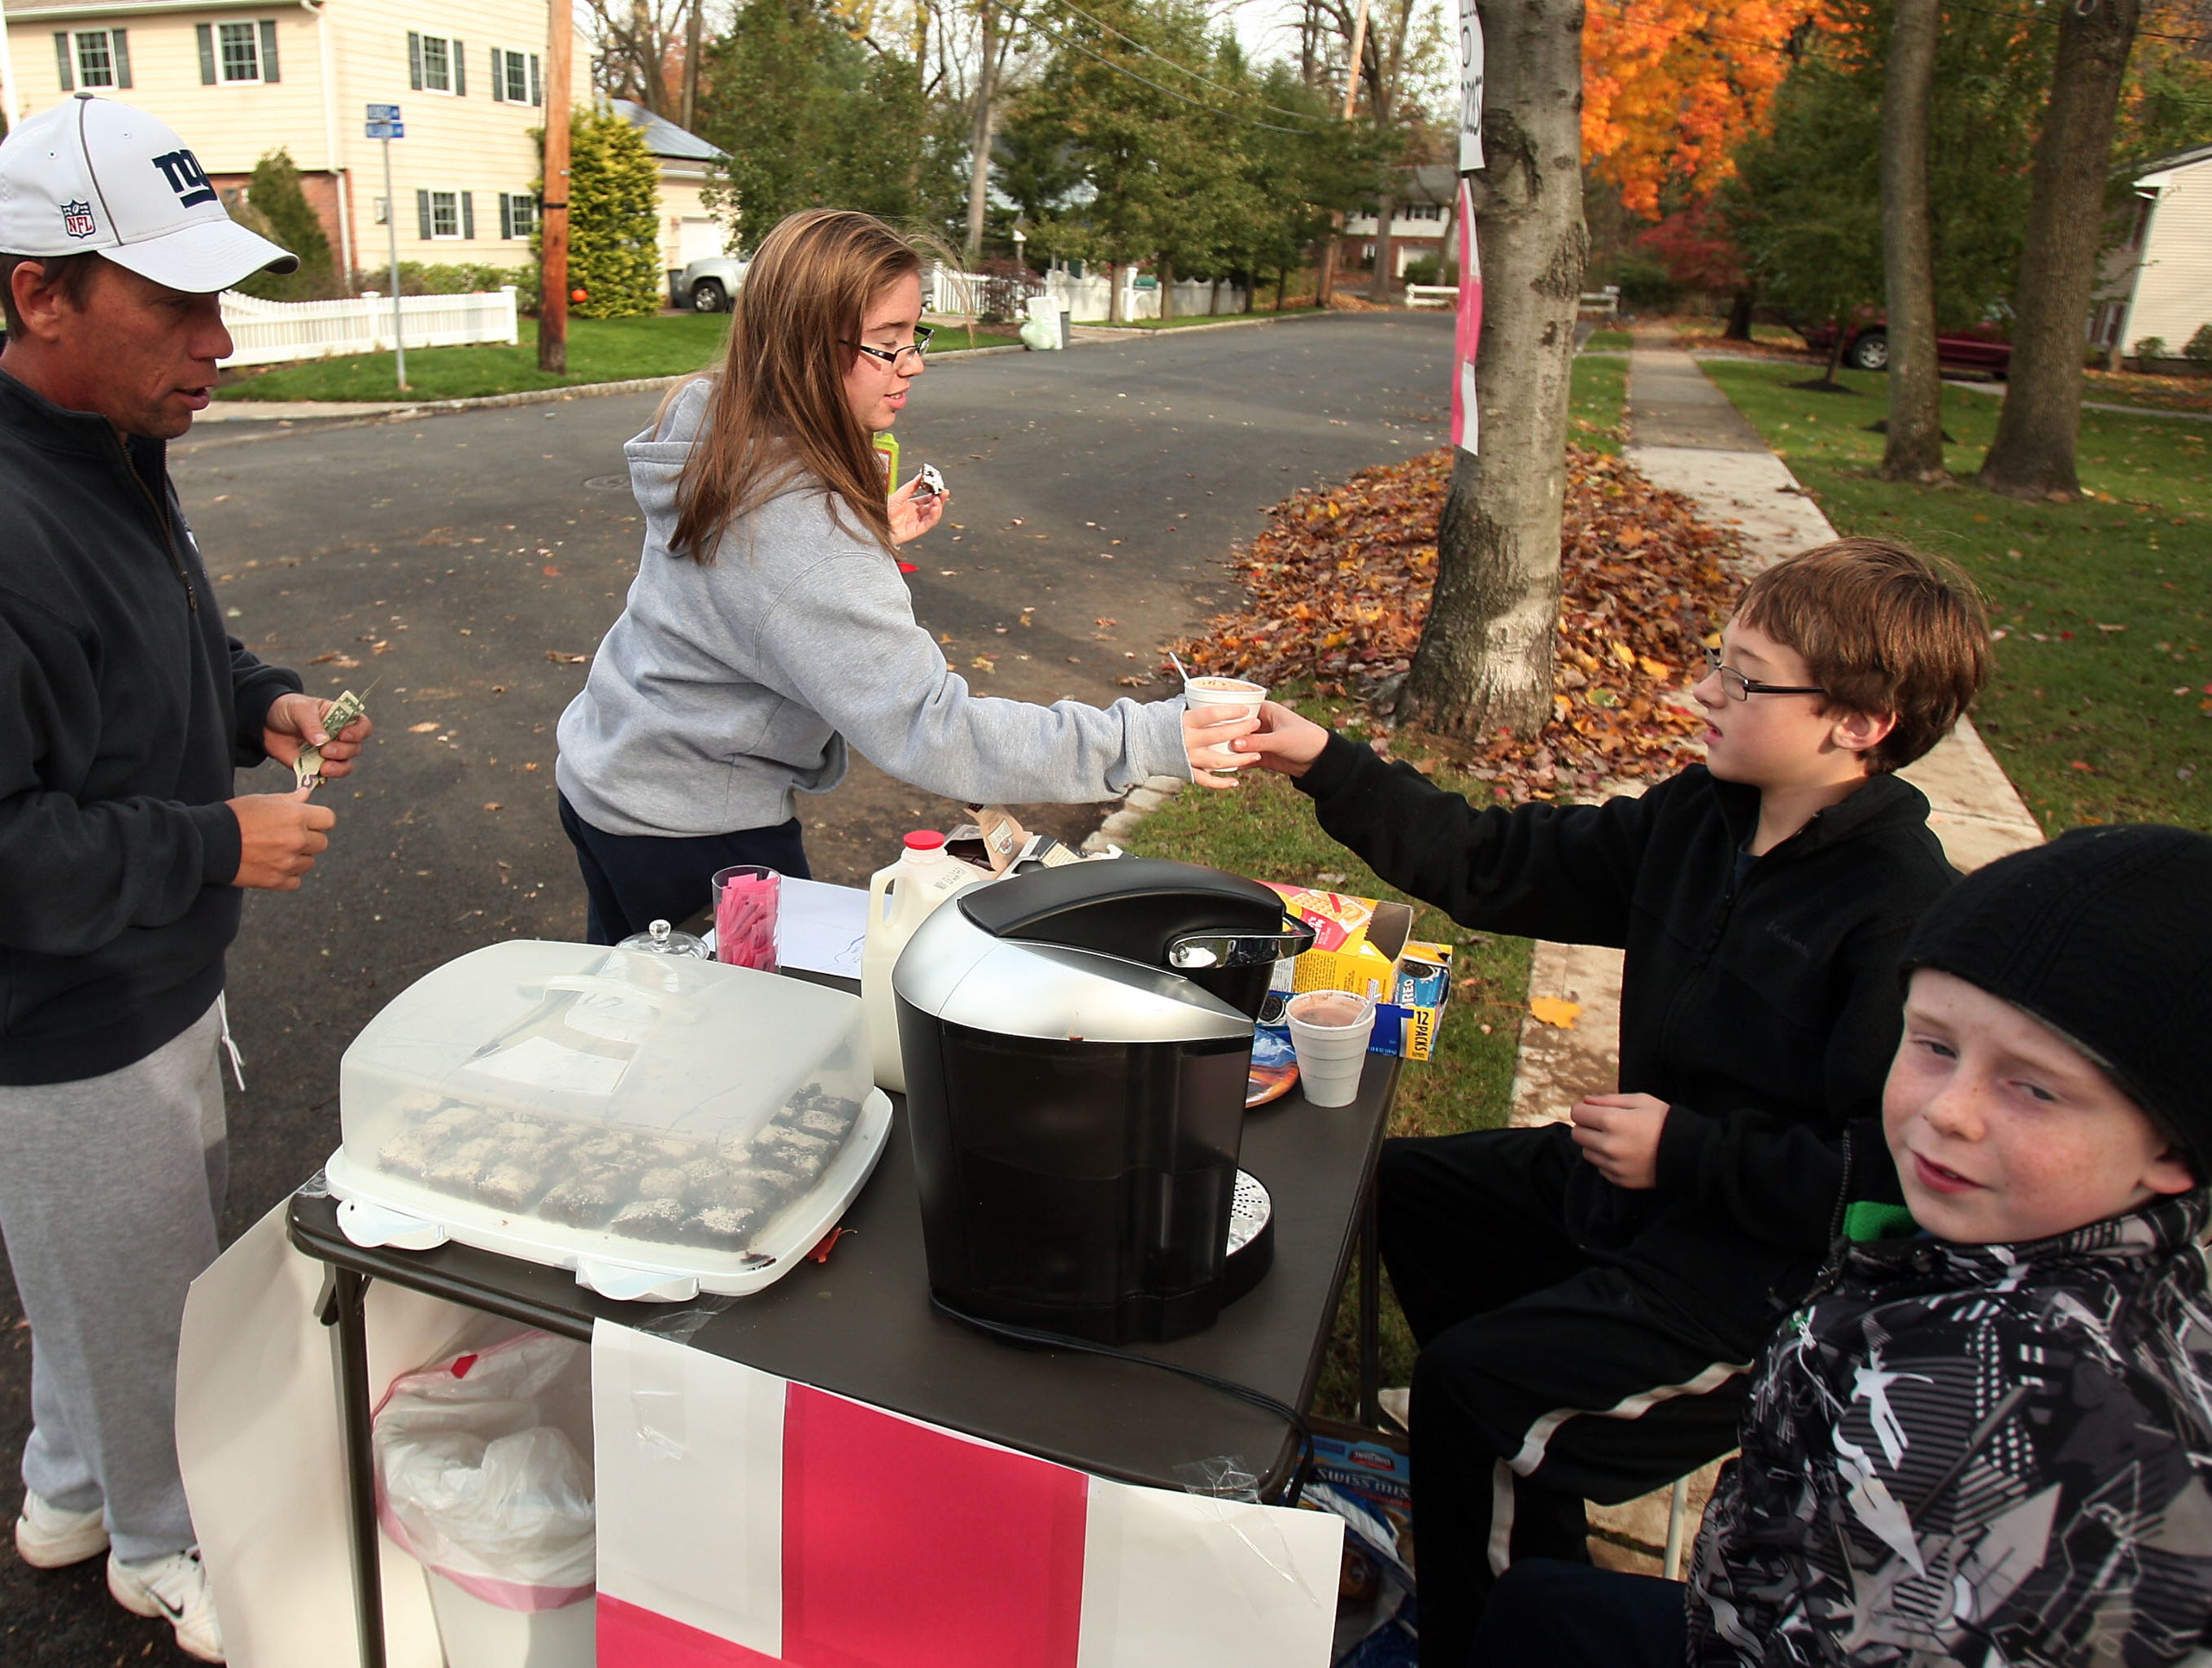 Chatham, NJ- November 1, 2012--Ron and Kelly Krincek of Chatham, NJ buy some hot chocolate from Nick Meyer (11) and Jack Konrad (8) who are taking the money for donations to the Red Cross on Hedges Avenue as locals continue the recovery process after Hurricane Sandy devastated the eastern seaboard.